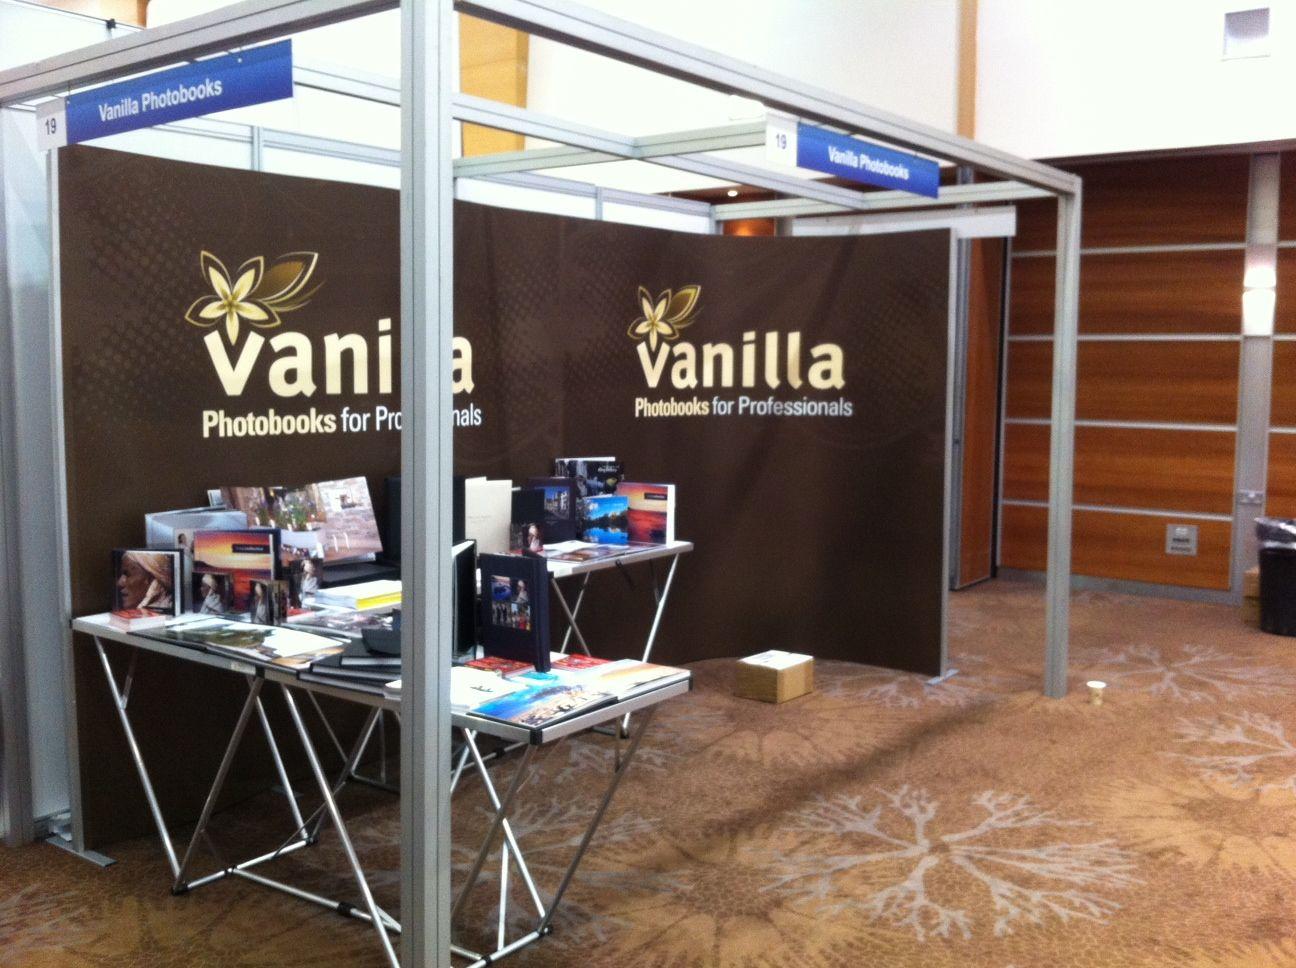 vanilla photobooks stand at photolive this weekend photolive